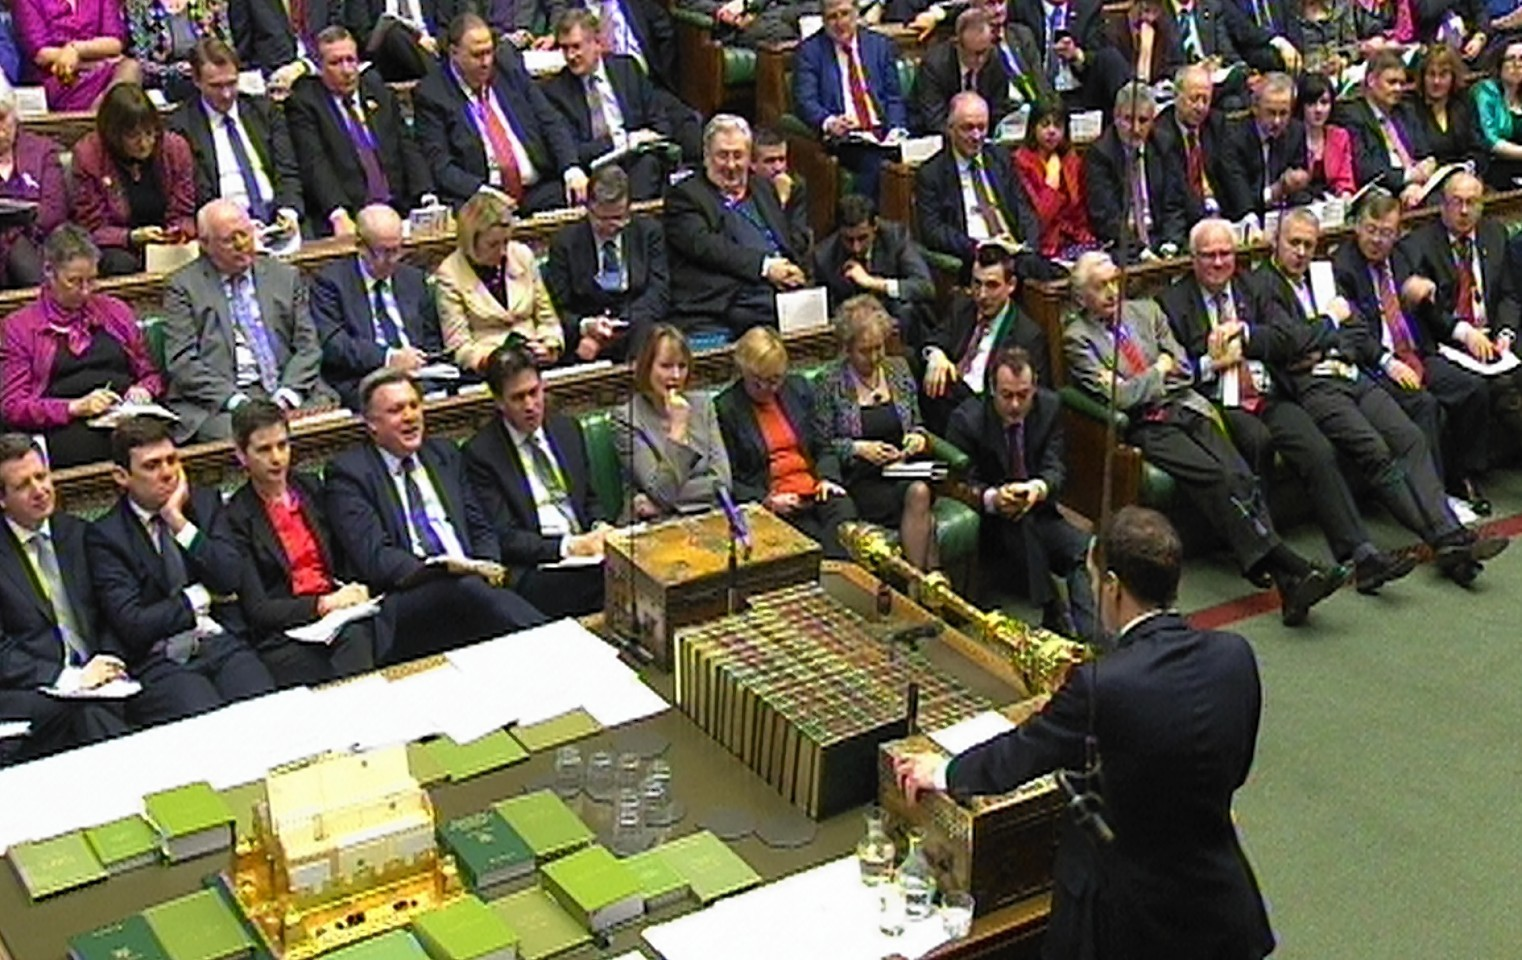 Chancellor of the Exchequer George Osborne delivers his Budget statement t